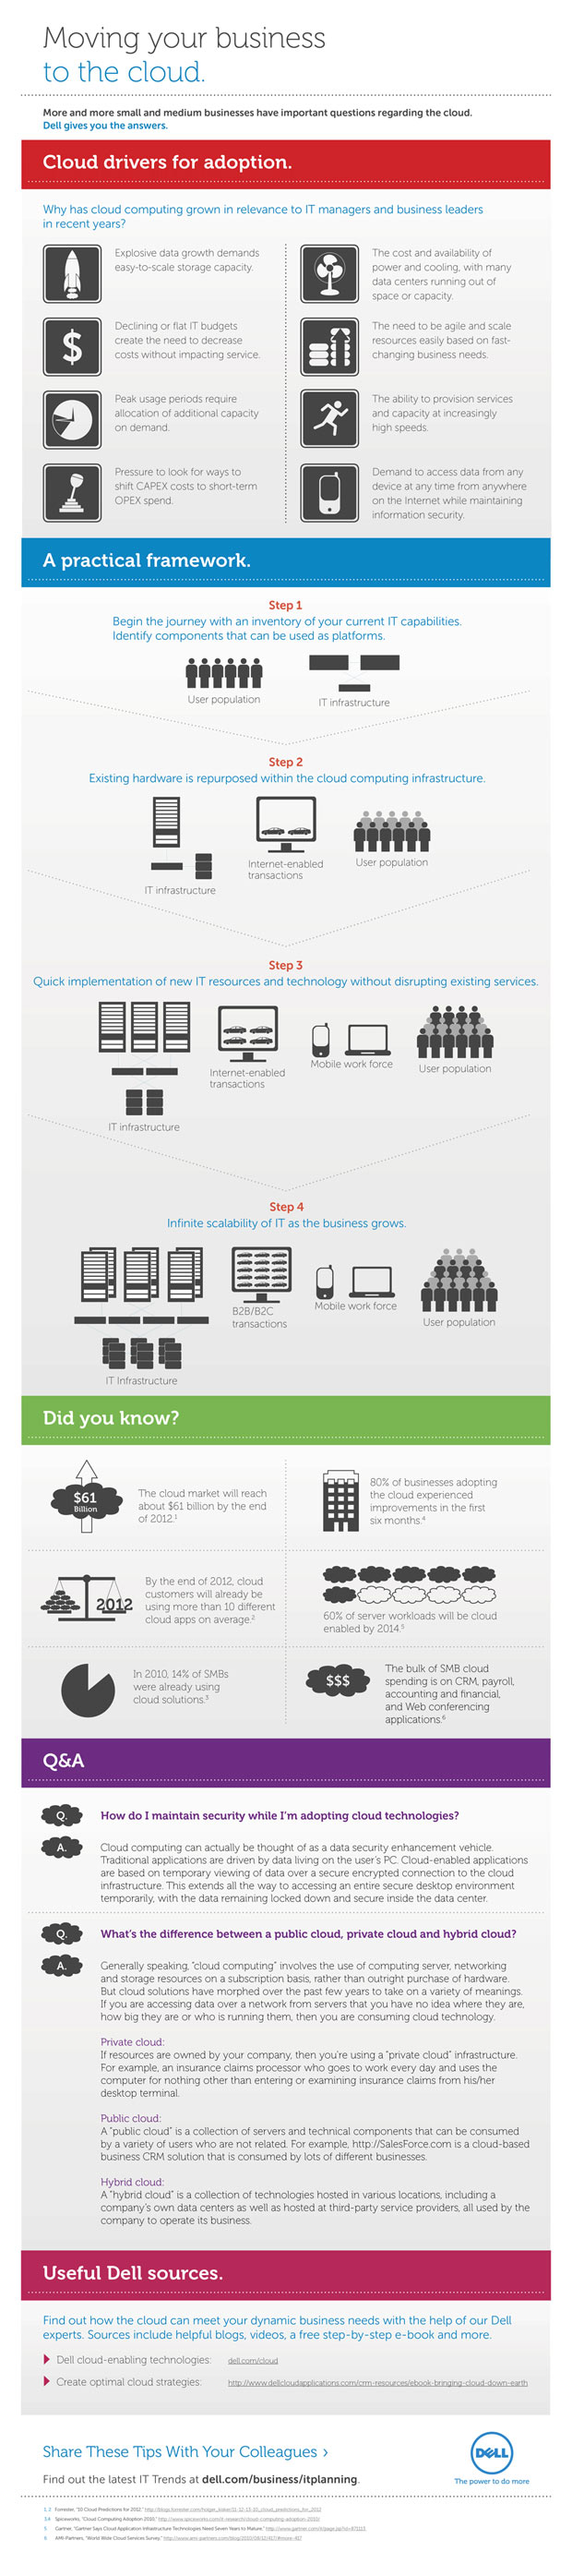 cloud computing adoption infographic